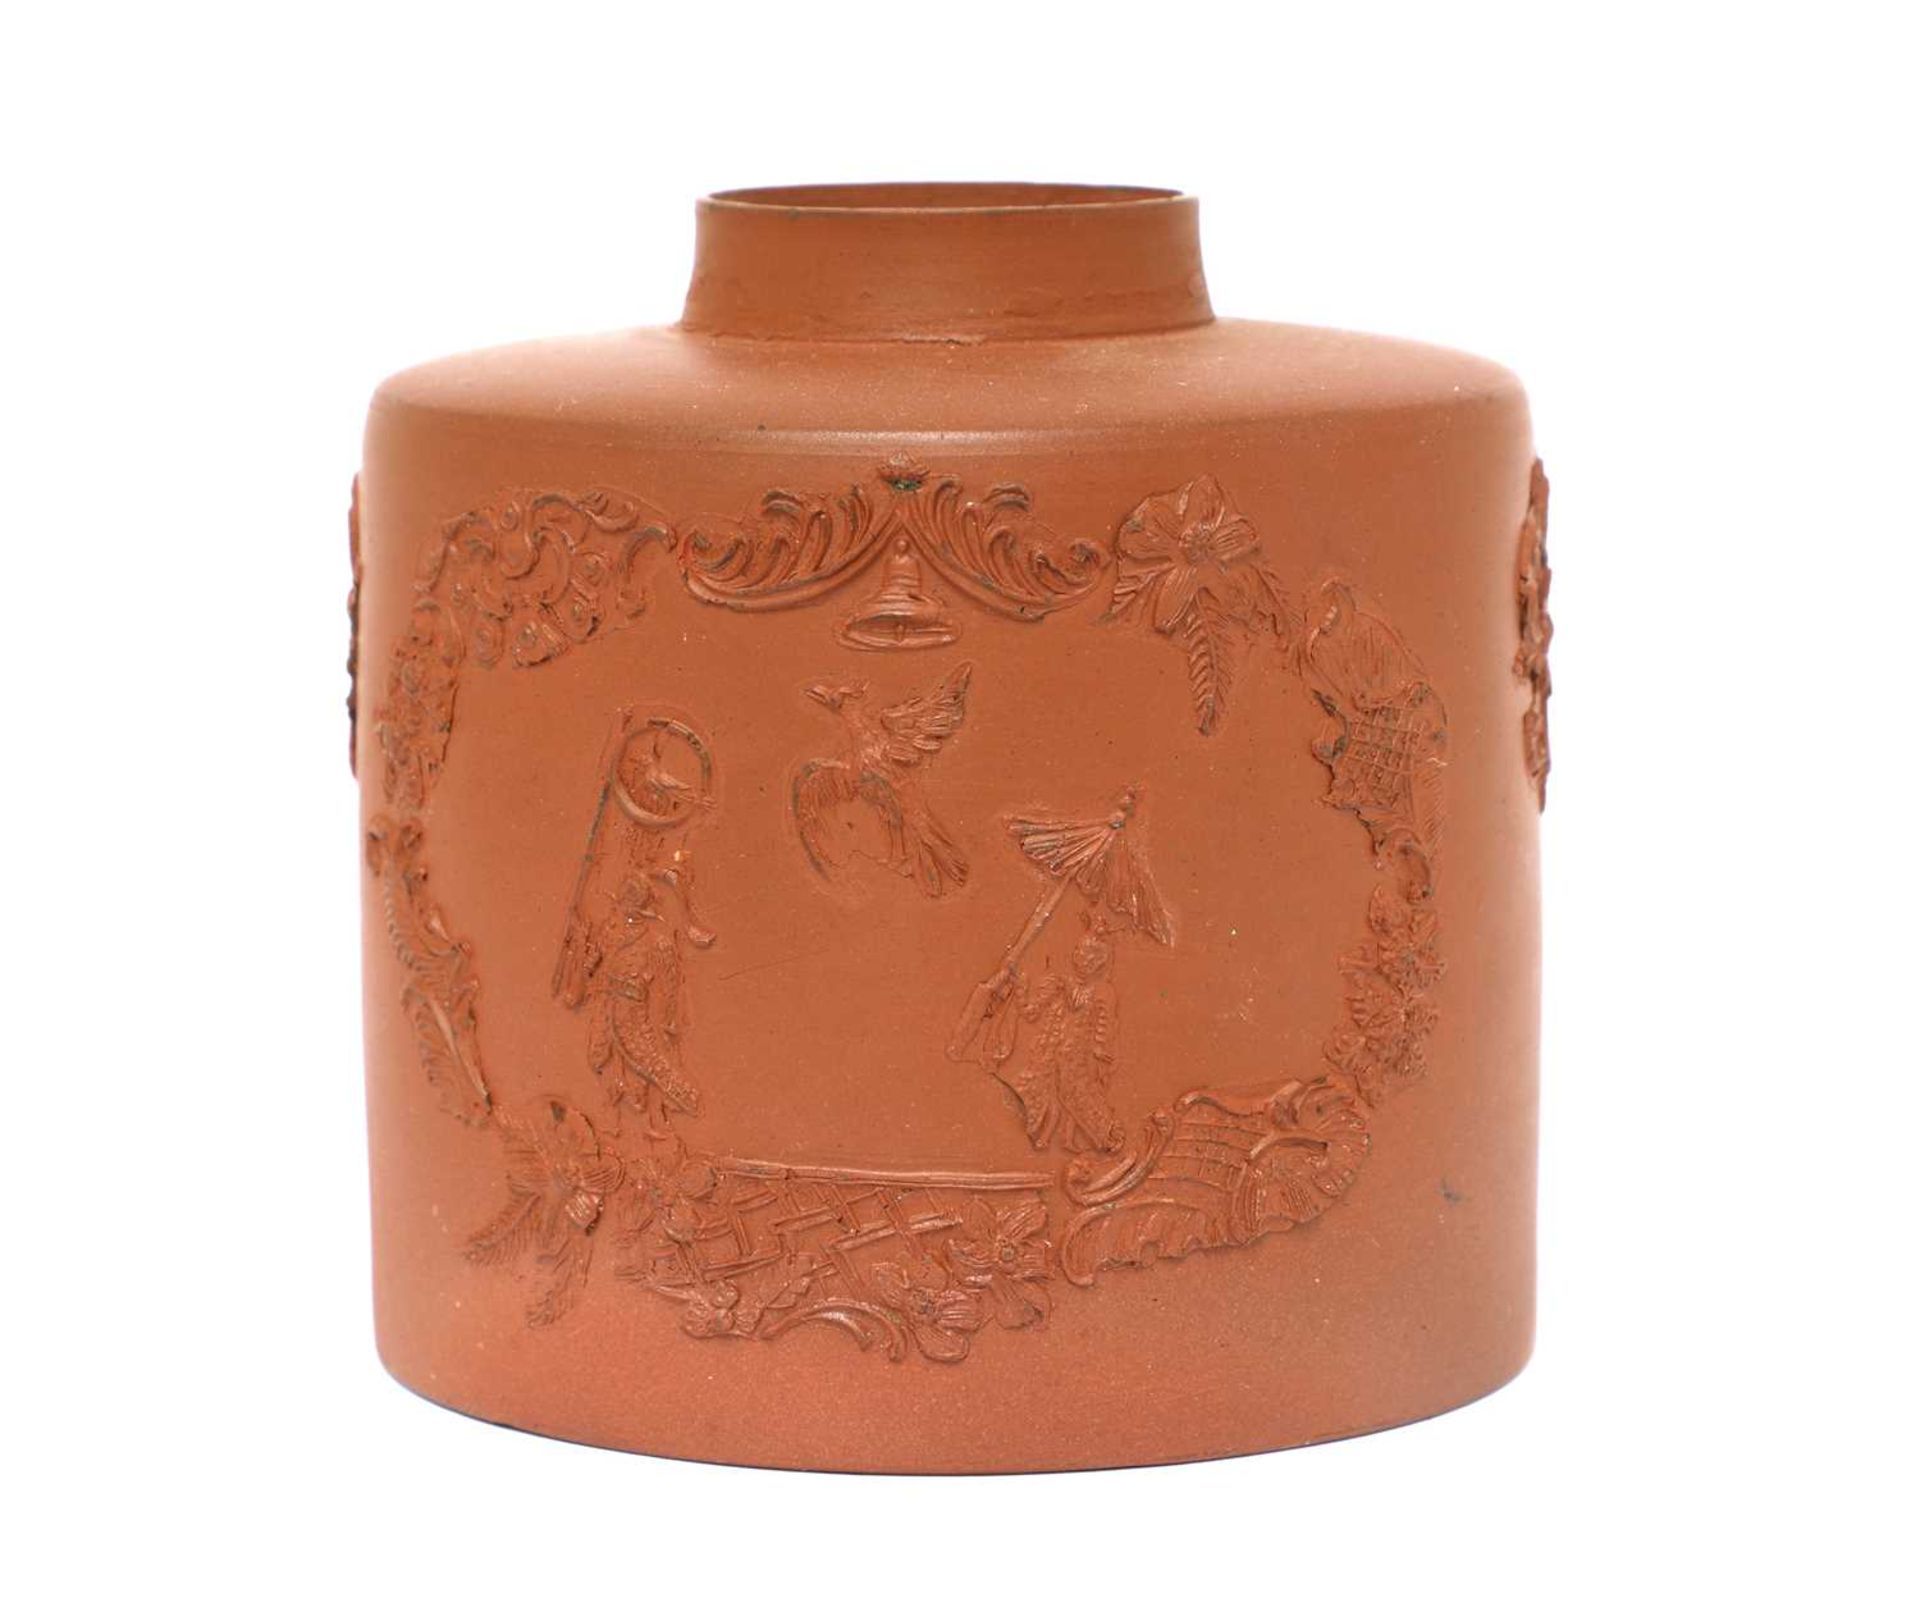 A Staffordshire redware cylindrical tea canister, - Image 2 of 3